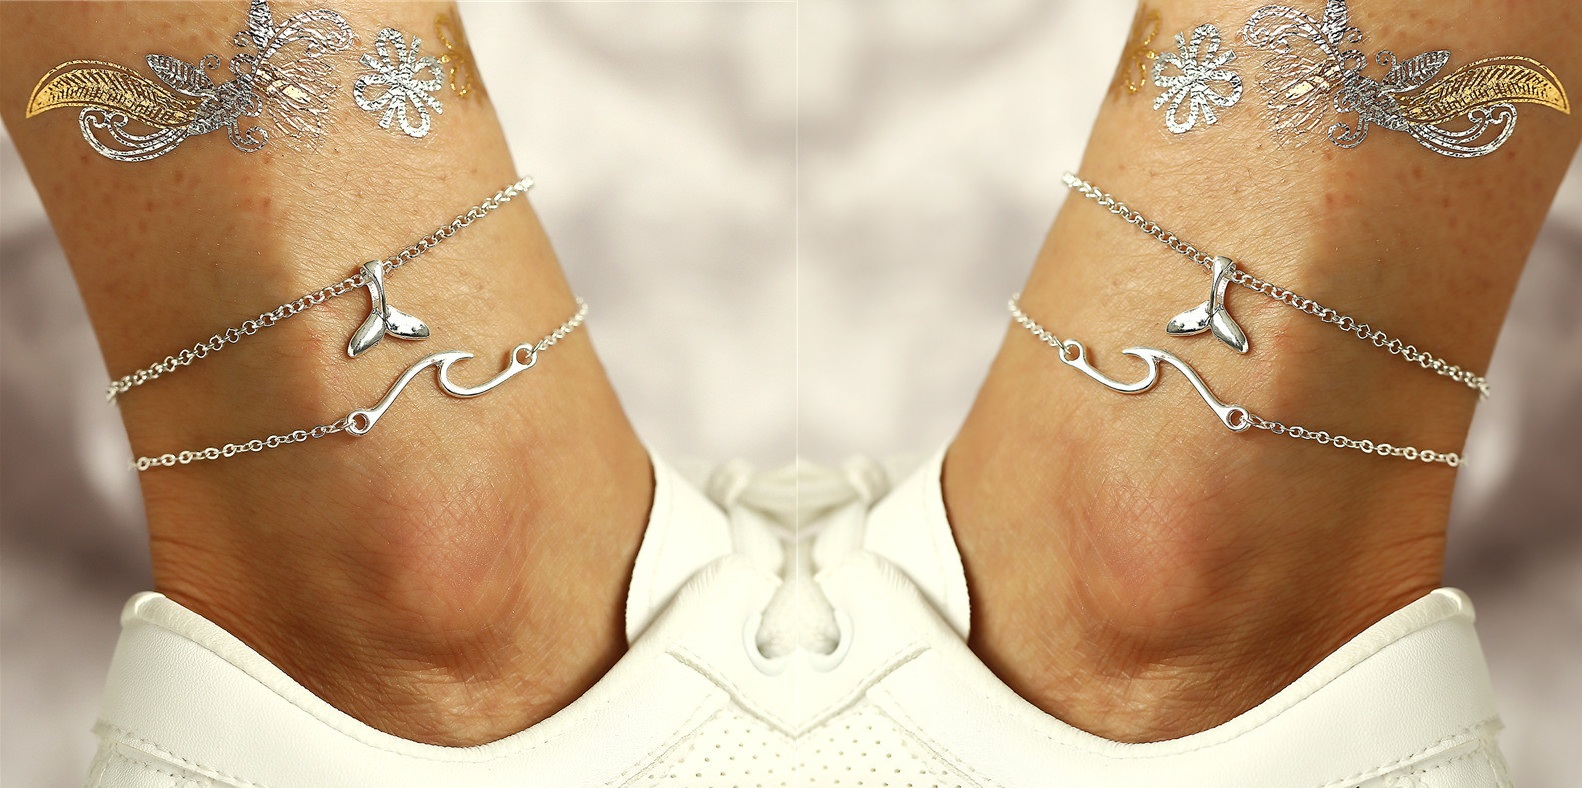 Classic Nautical Alloy Anklet for Beach Occasion